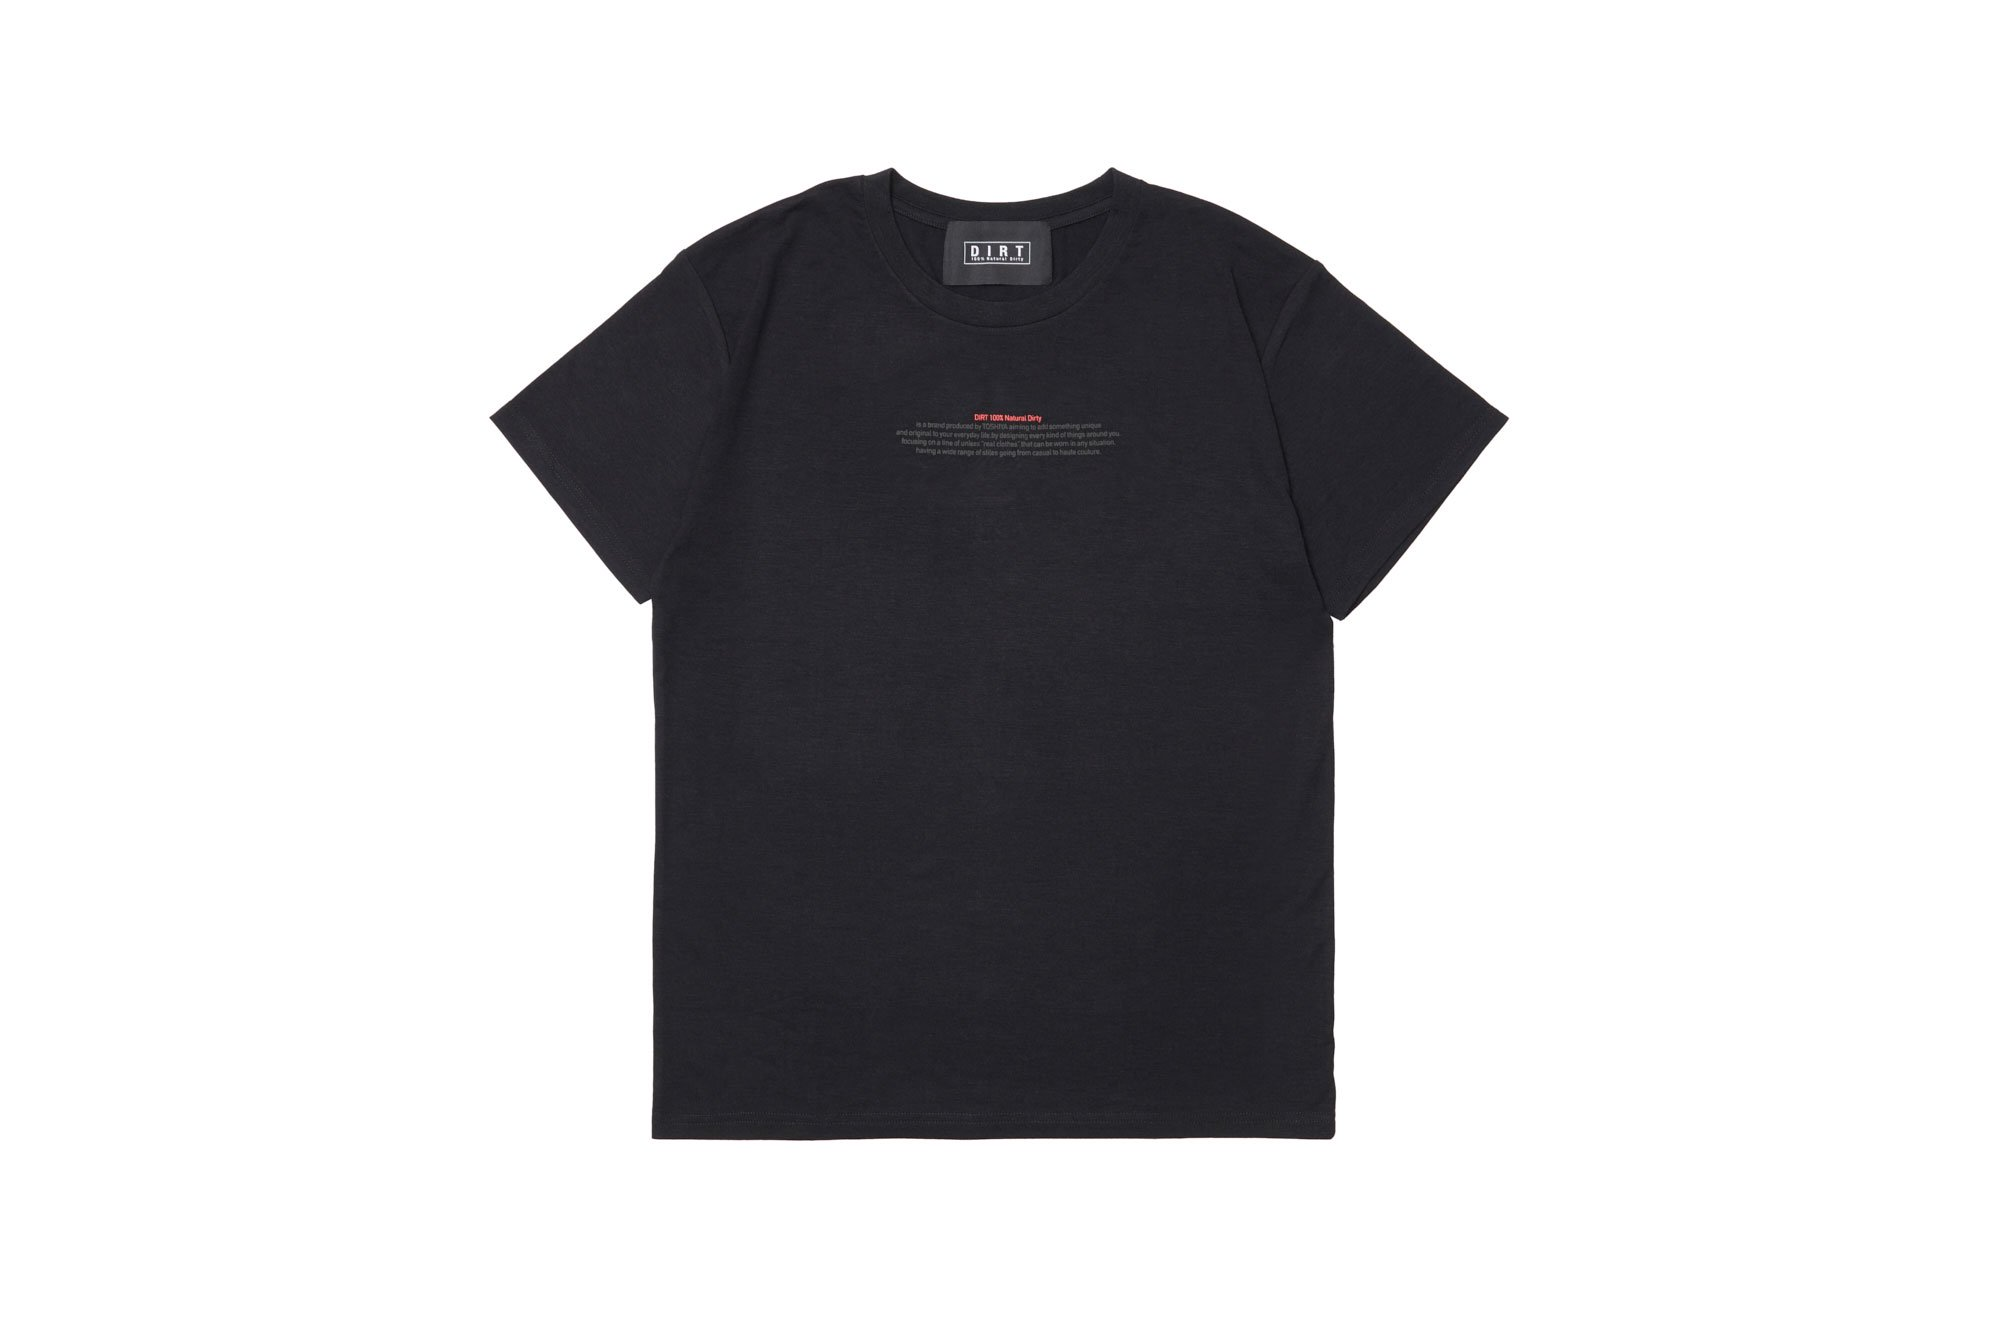 <img class='new_mark_img1' src='https://img.shop-pro.jp/img/new/icons14.gif' style='border:none;display:inline;margin:0px;padding:0px;width:auto;' />2020AW collection T-shirt BK